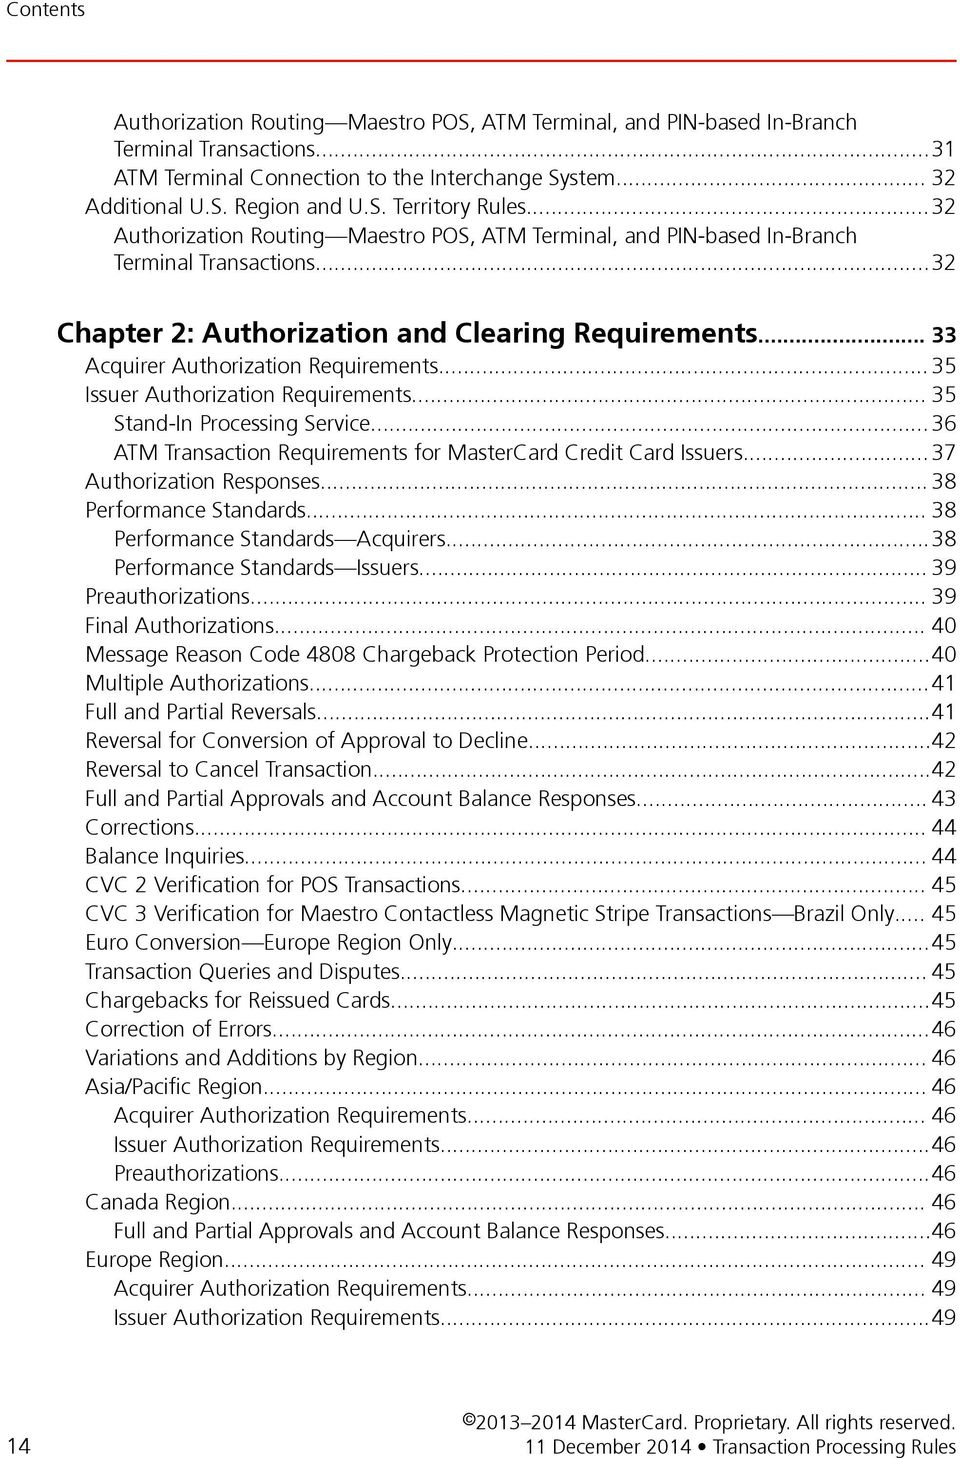 .. 35 Issuer Authorization Requirements... 35 Stand-In Processing Service...36 ATM Transaction Requirements for MasterCard Credit Card Issuers...37 Authorization Responses... 38 Performance Standards.